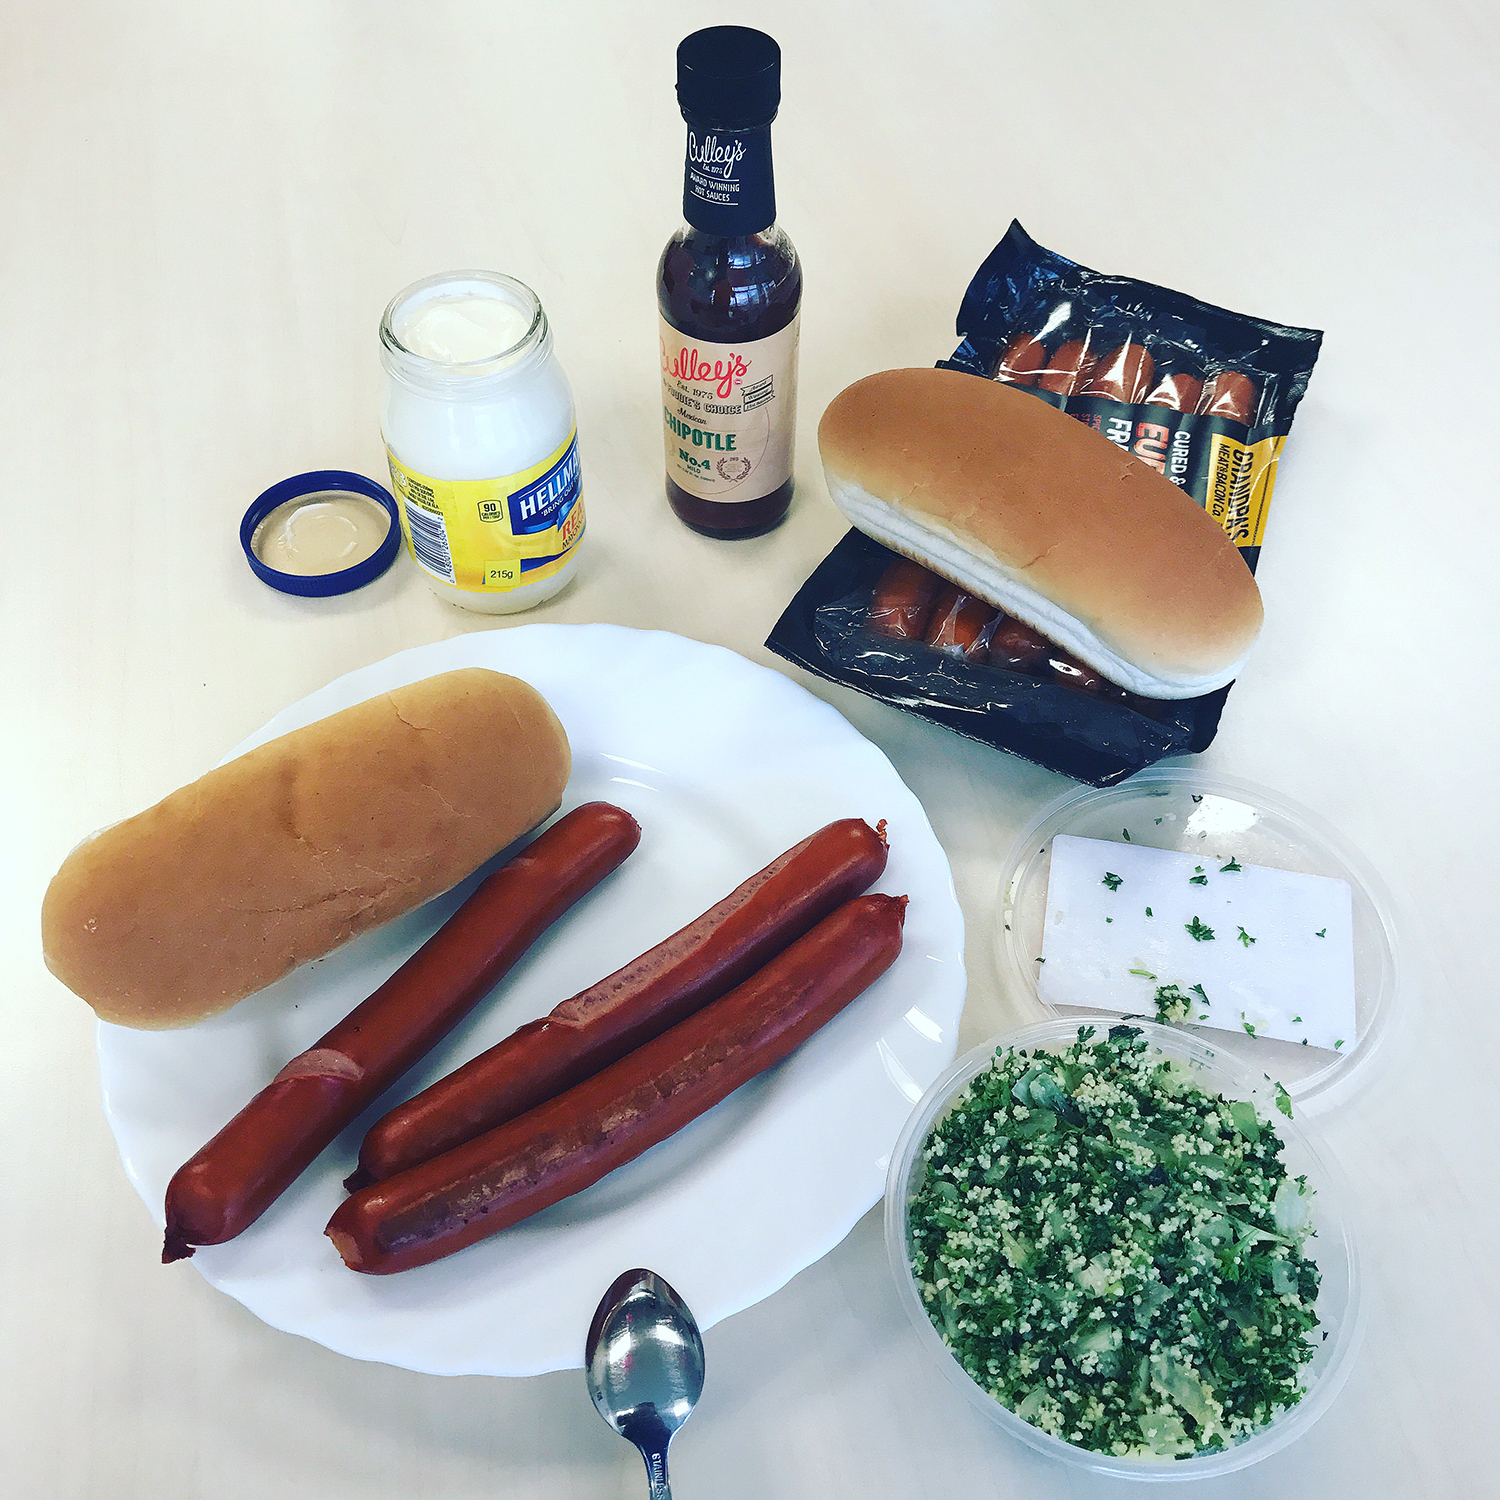 All I can say is thank God there's not much variety of good hotdogs (American style) and frankfurters in New Zealand....these are chicken franks from the Grandpa brand